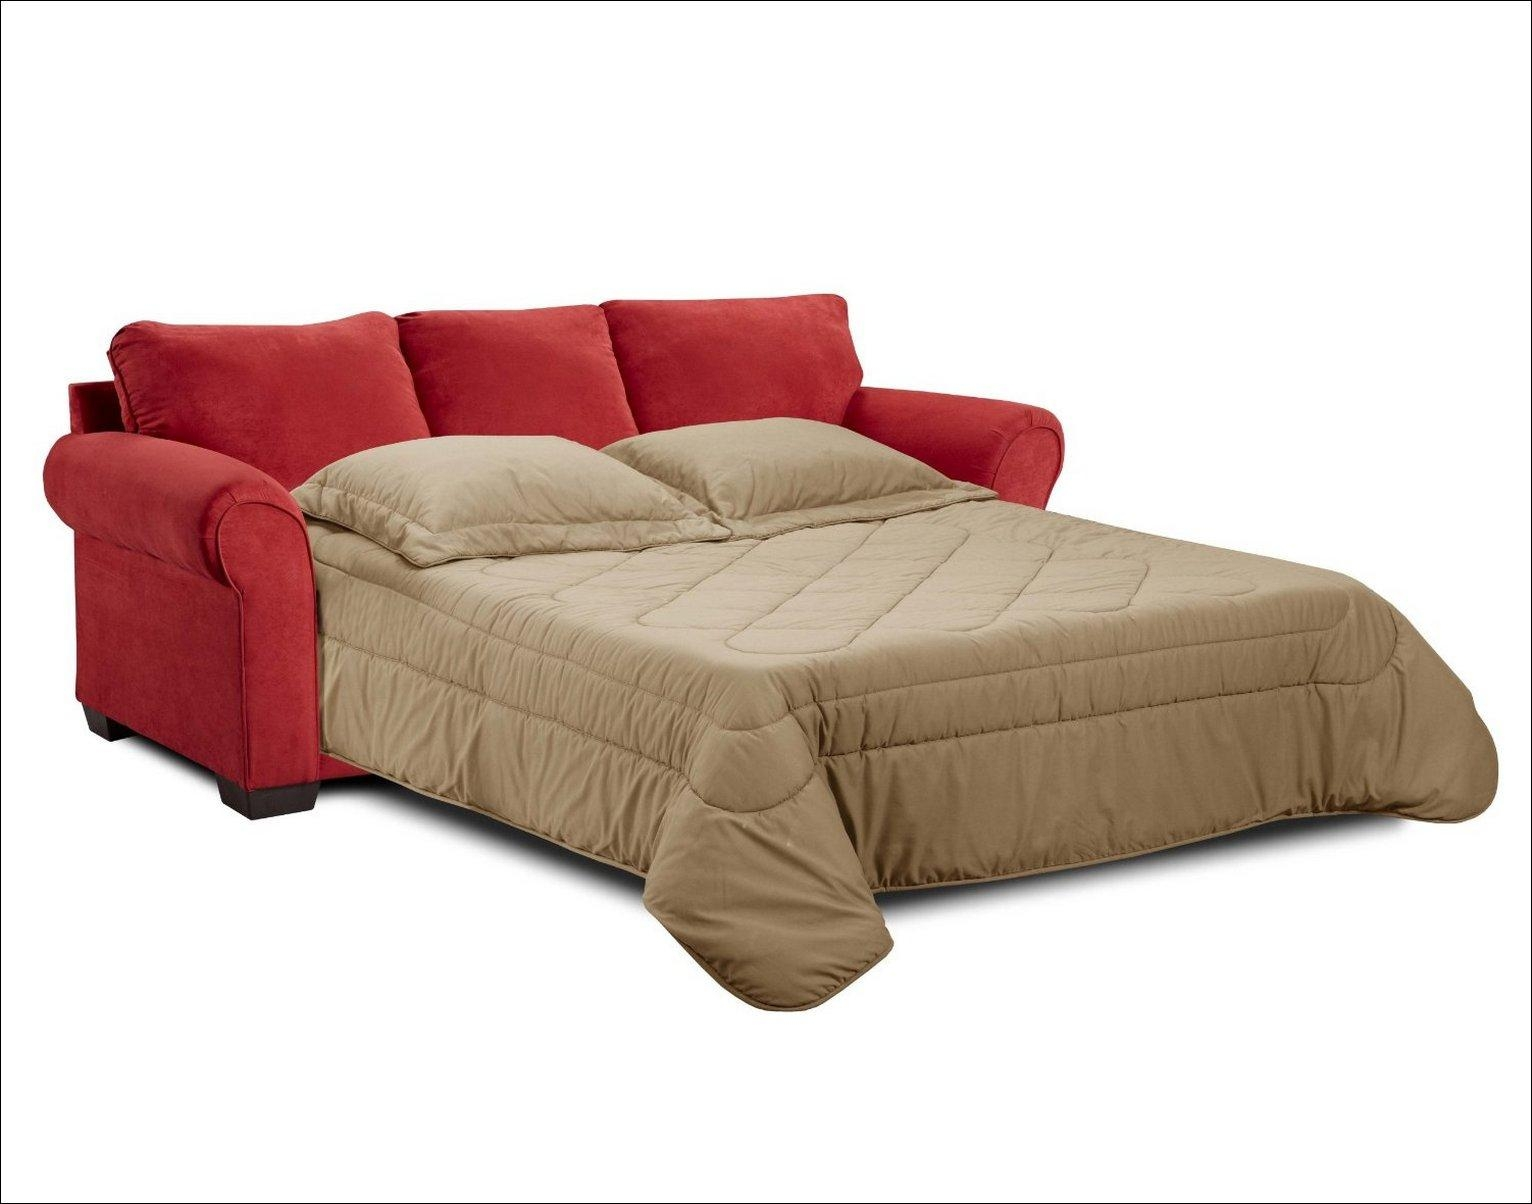 Furniture: Cool Tips For Your Living Room With Comfortable Sears Intended For Sears Sofa (View 17 of 20)